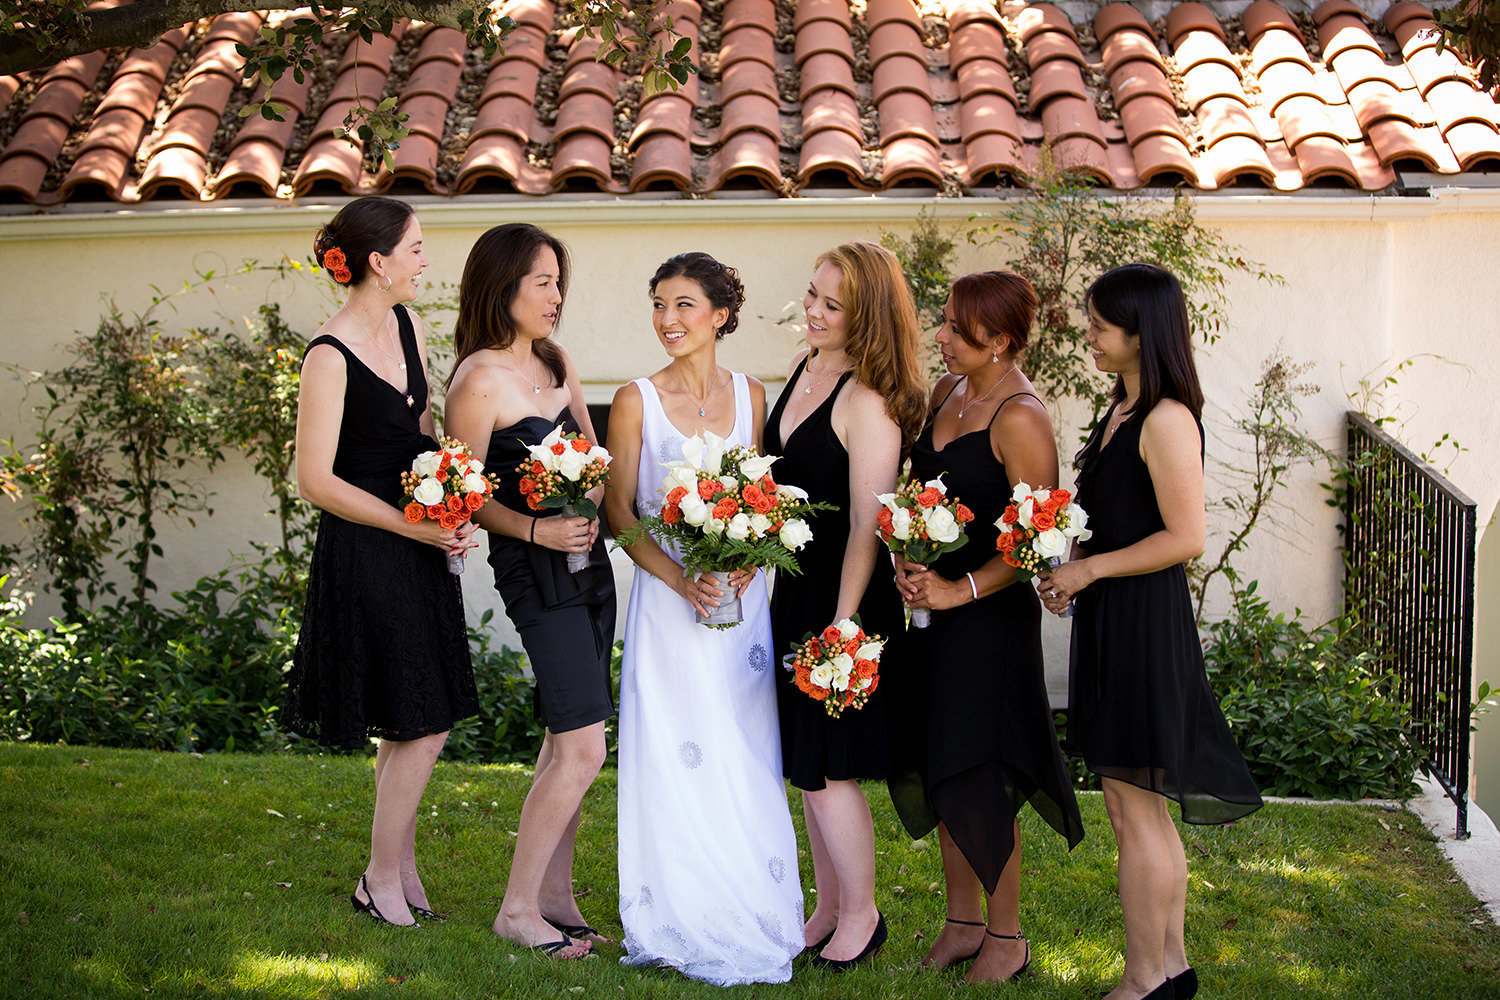 bride and bridesmaids in black dresses